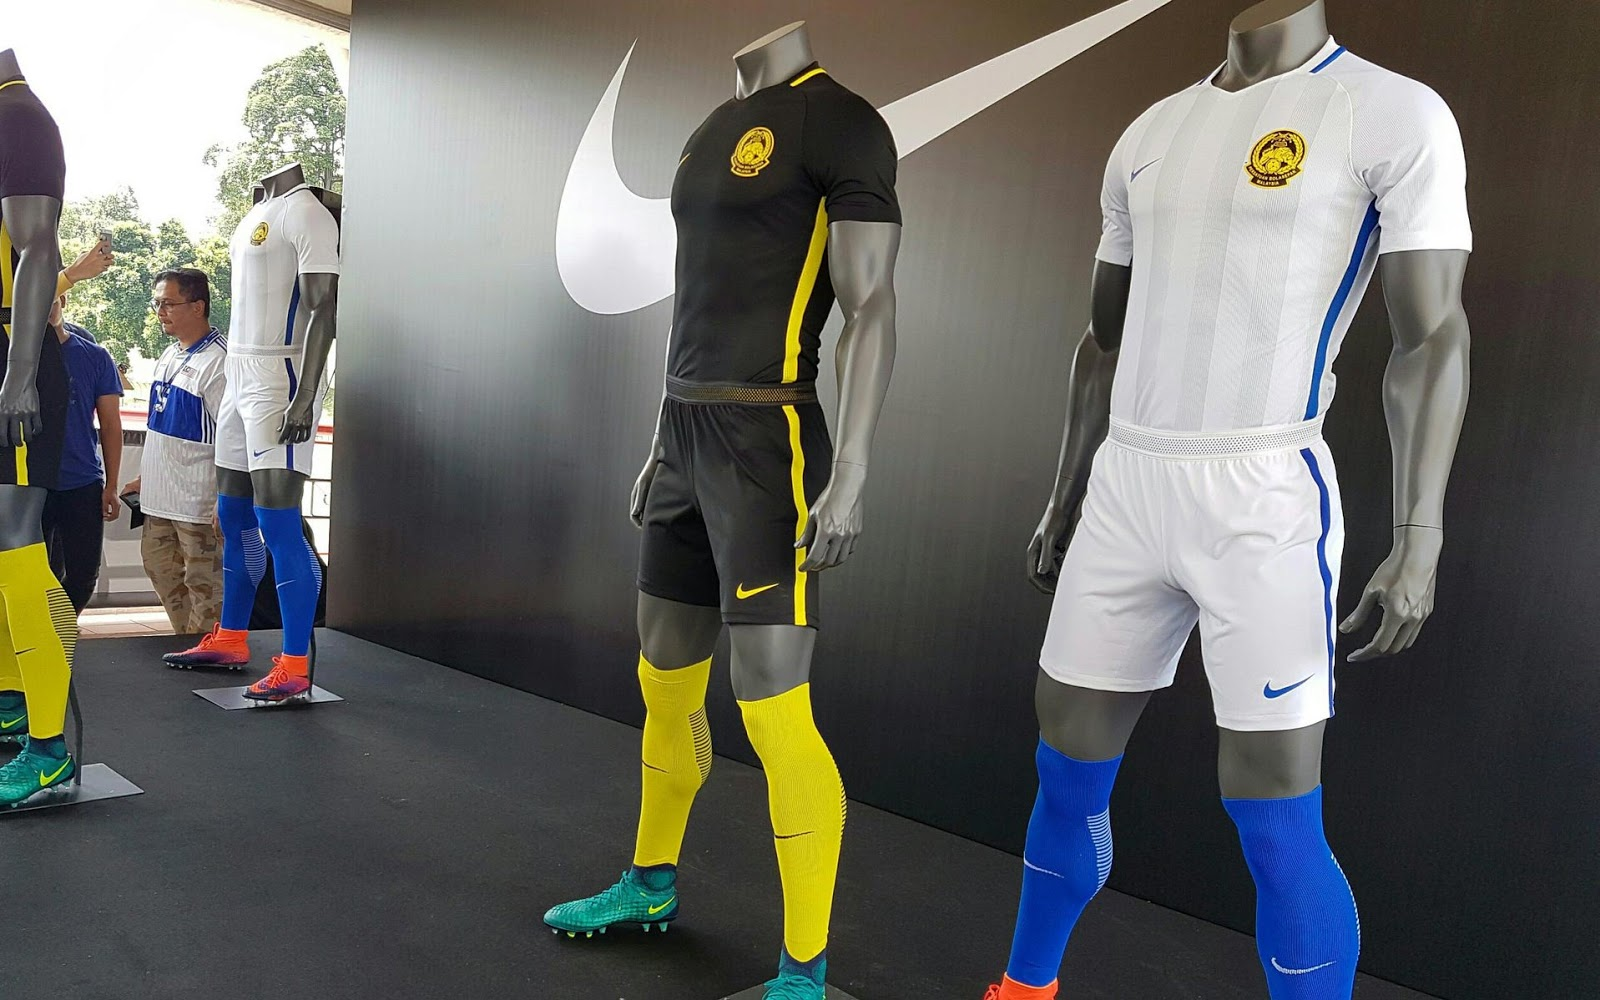 in line with nikes template the shorts and socks of the malaysia 2016 2018 kit are black and yellow respectively - Yellow Home 2016